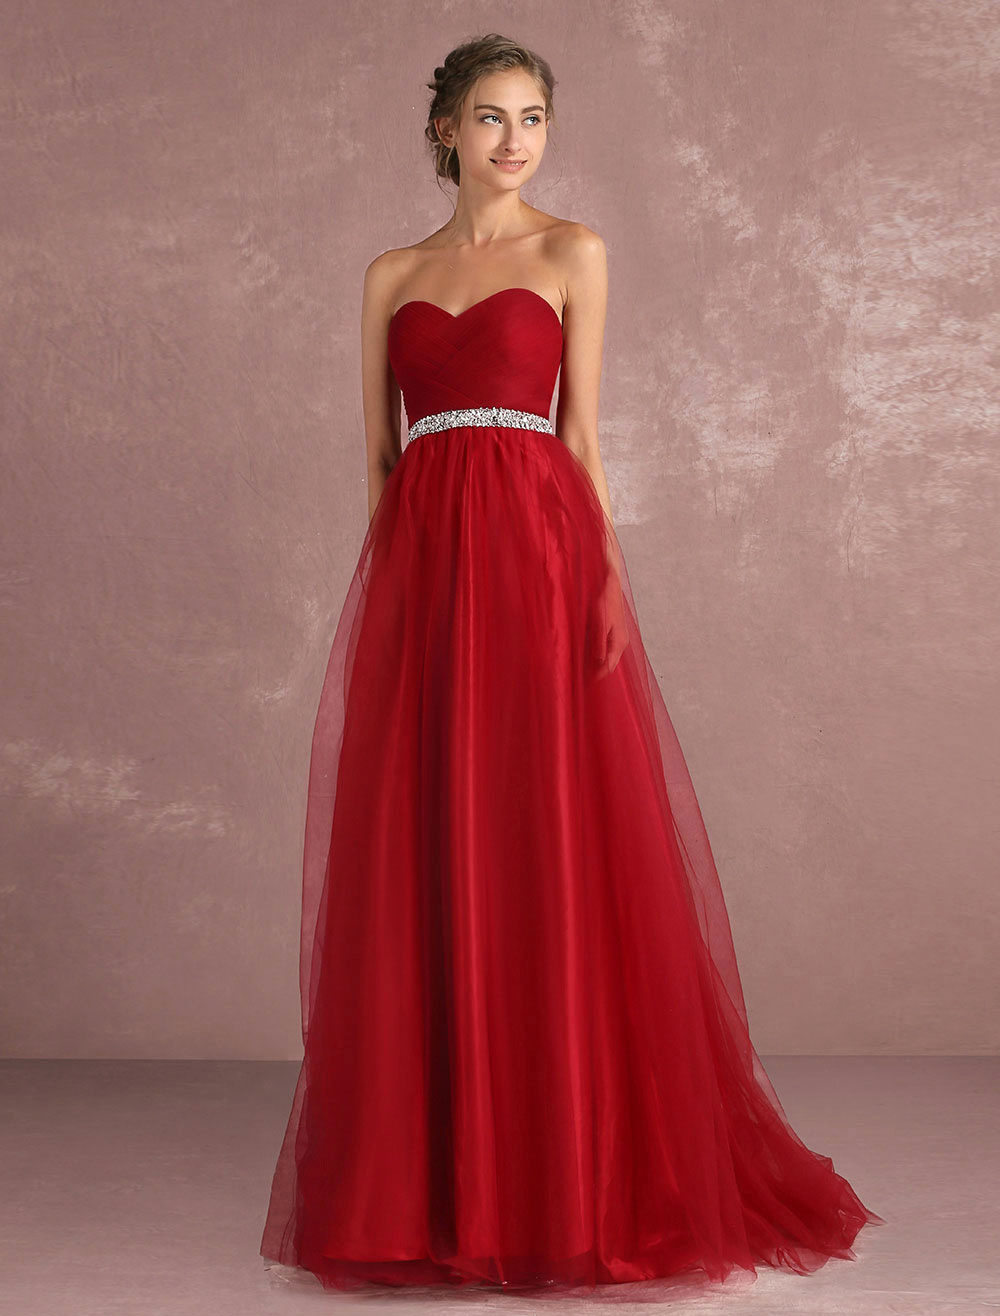 Red Prom Dresses 2018 Long Strapless Backless Tulle Evening Dress Sweetheart Sleeveless Rhinestones Sash A Line Party Dress With Train